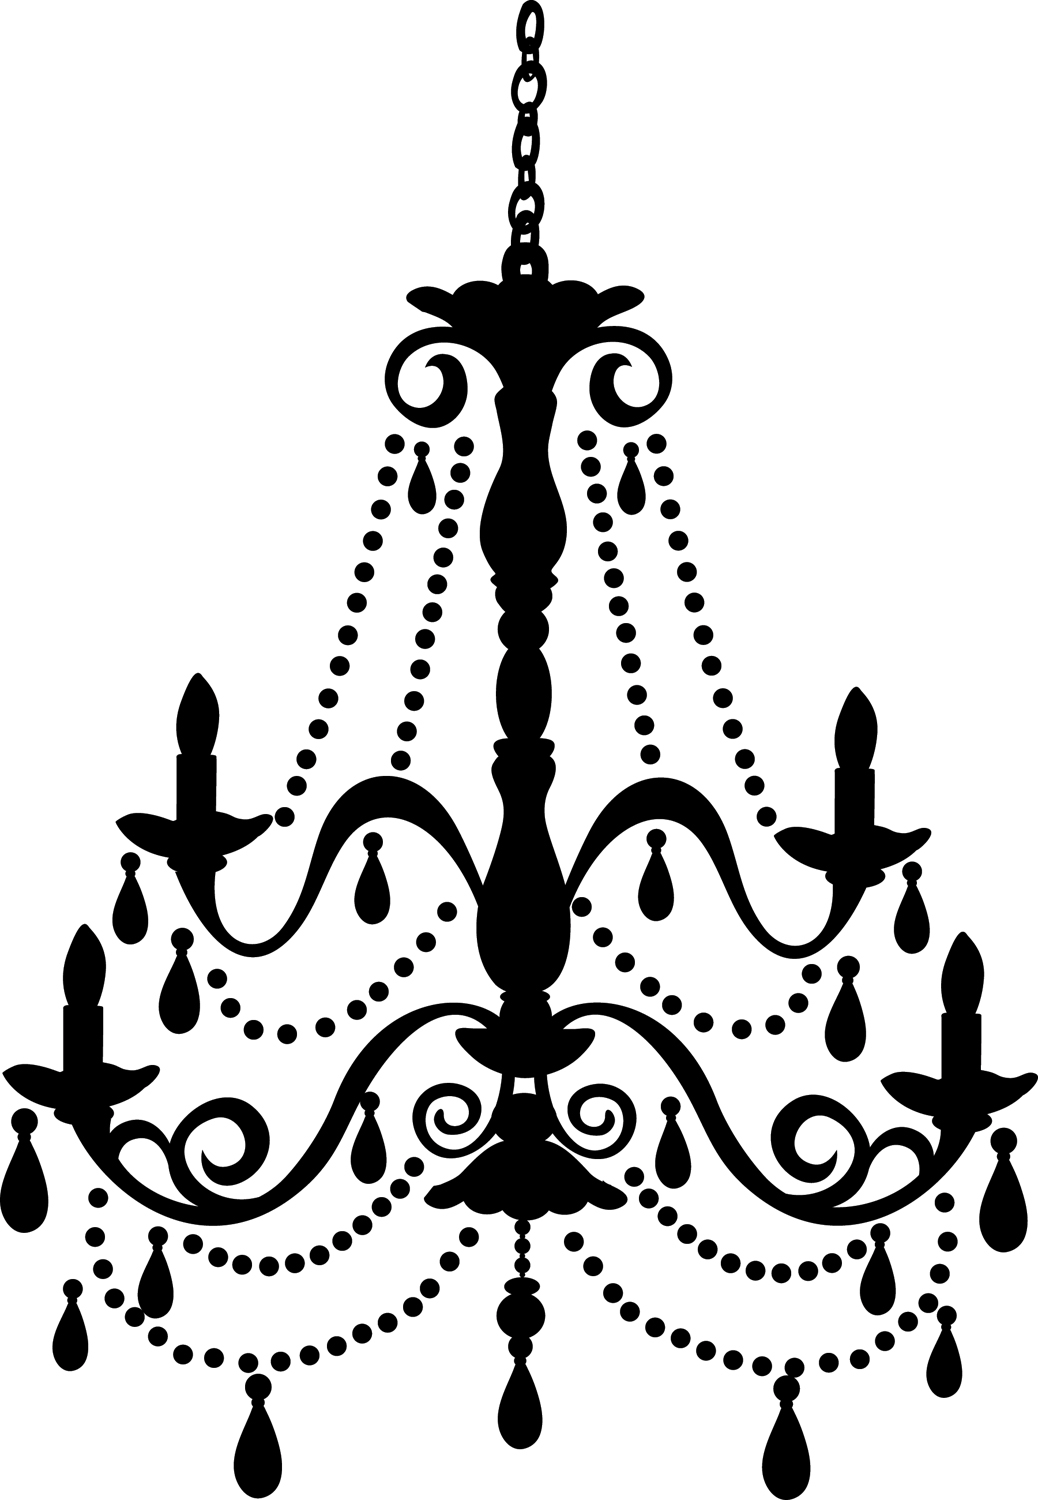 Chandelier clipart. Free old cliparts download